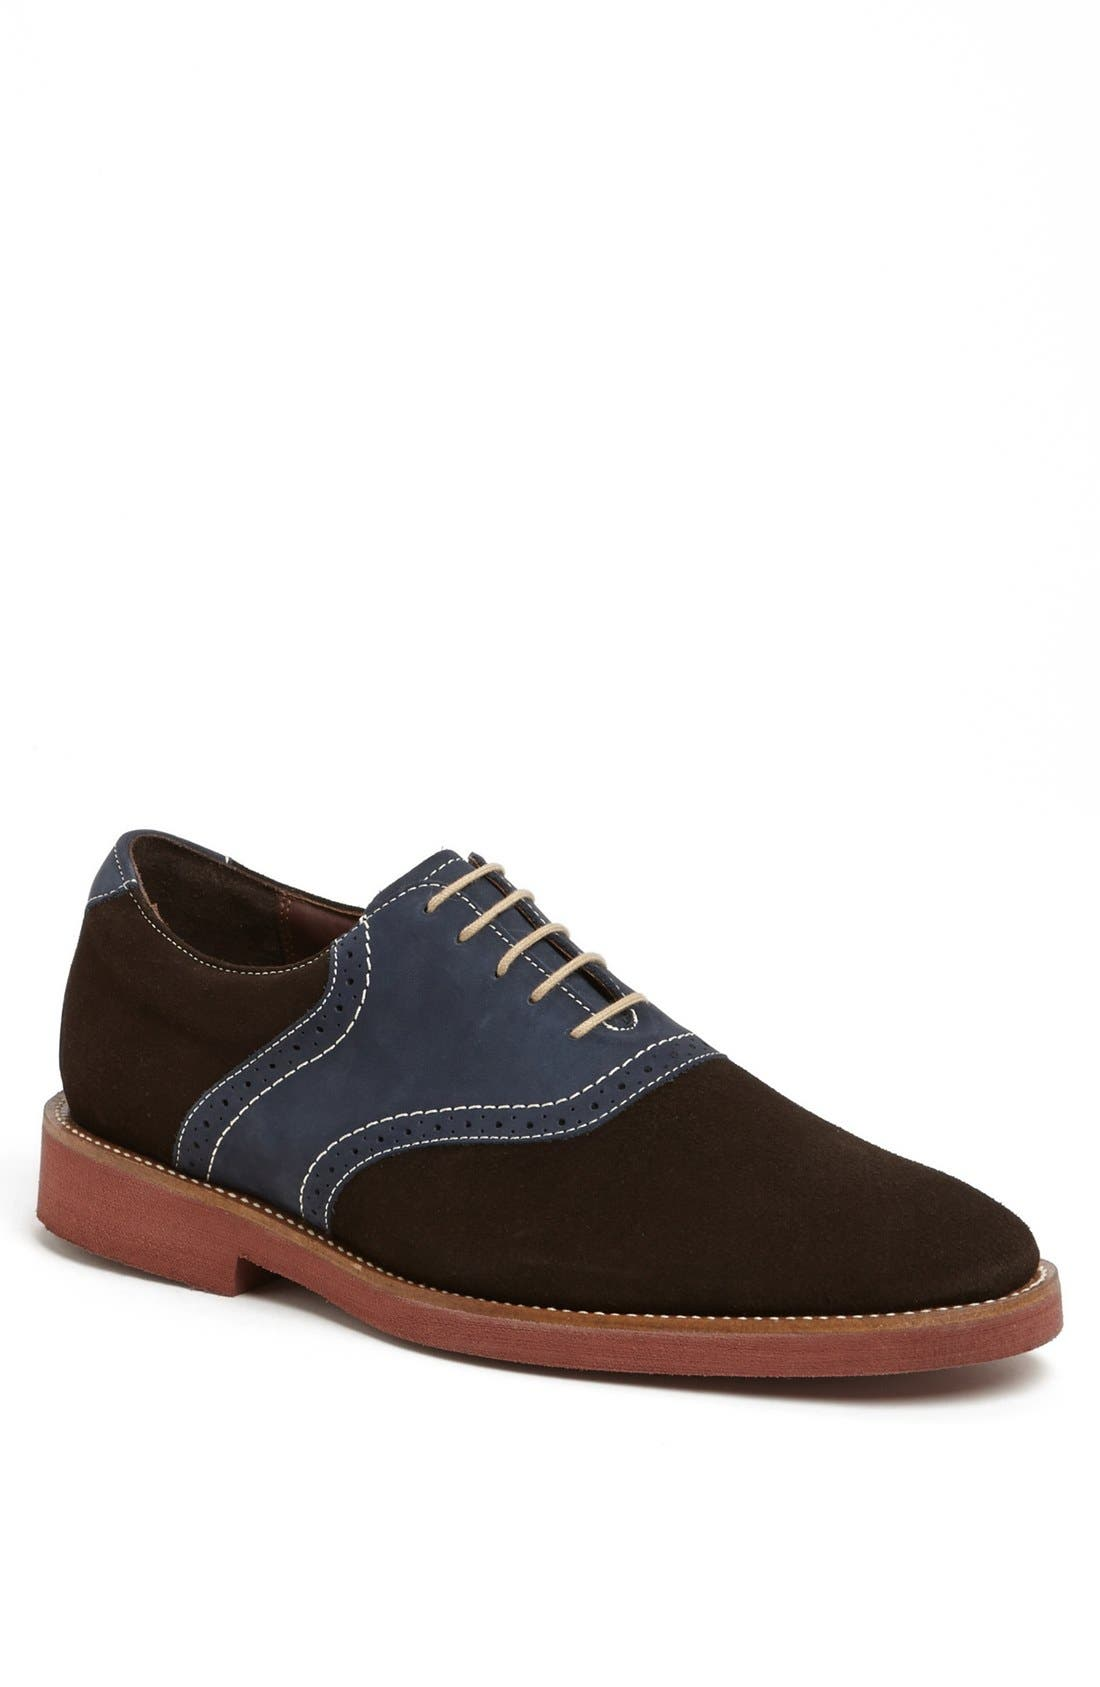 Neil M 'Stanford' Saddle Shoe